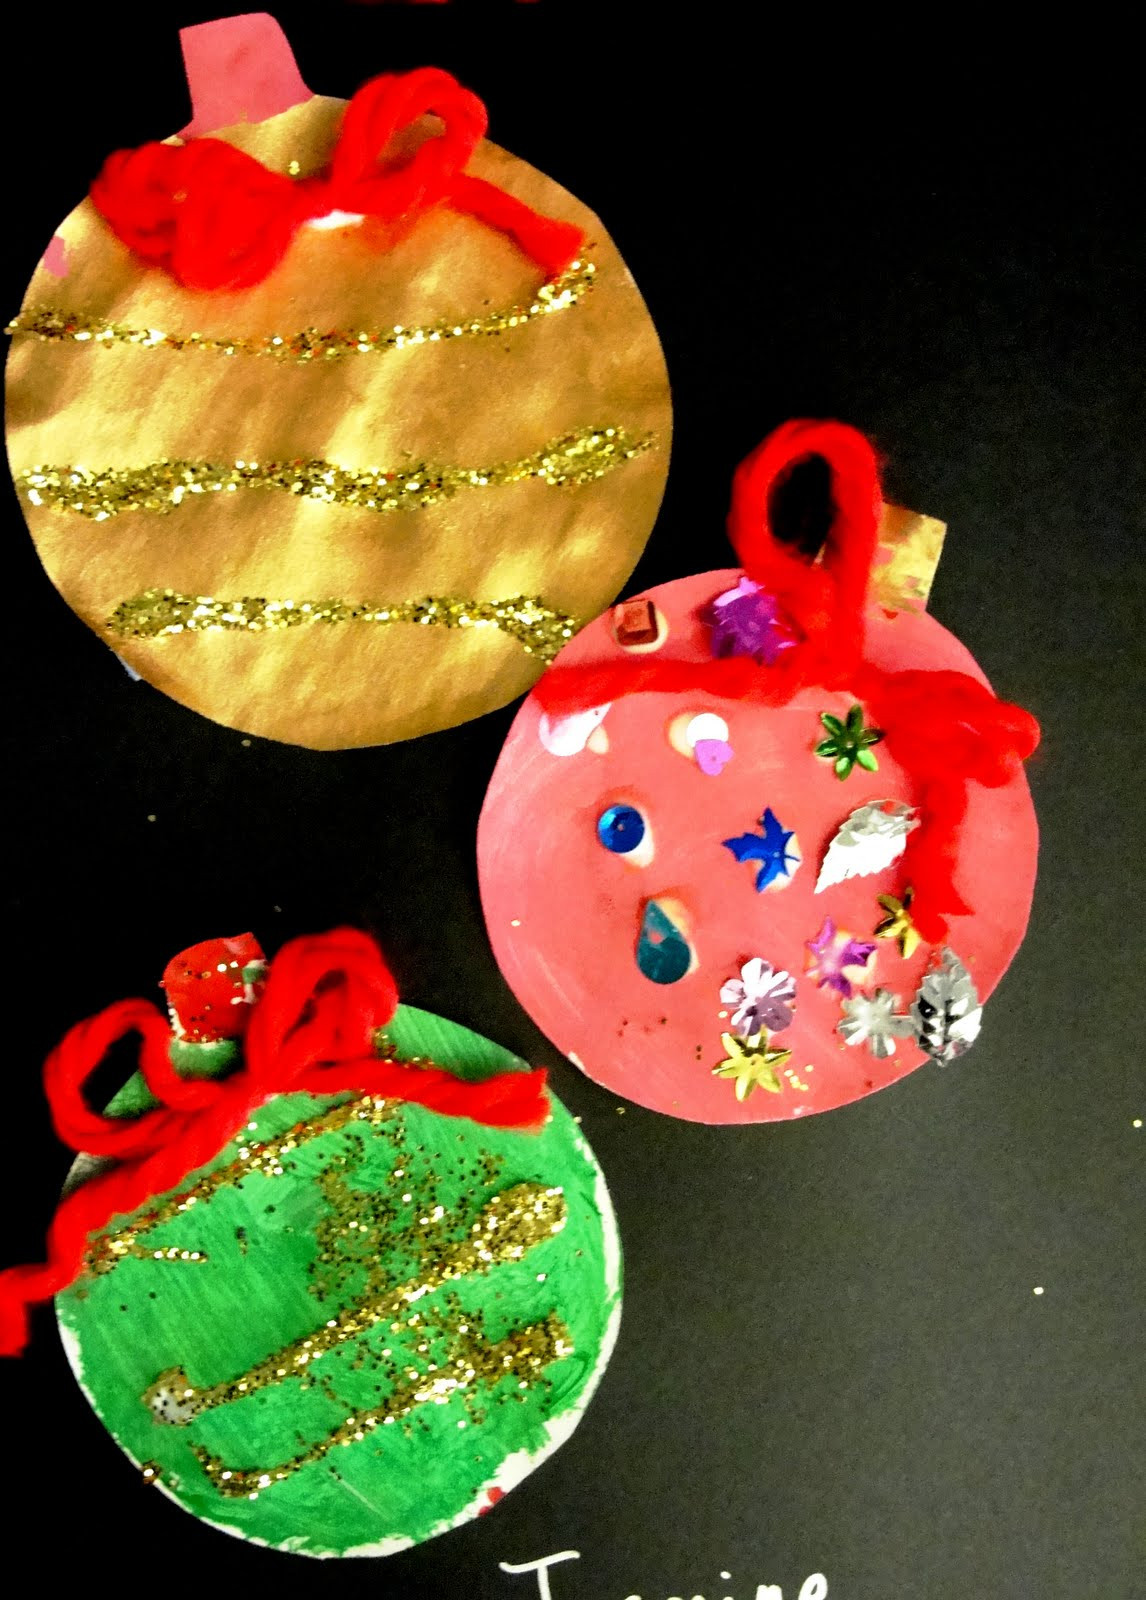 Christmas Painting Ideas For Kids  Dreamsakes s Blog